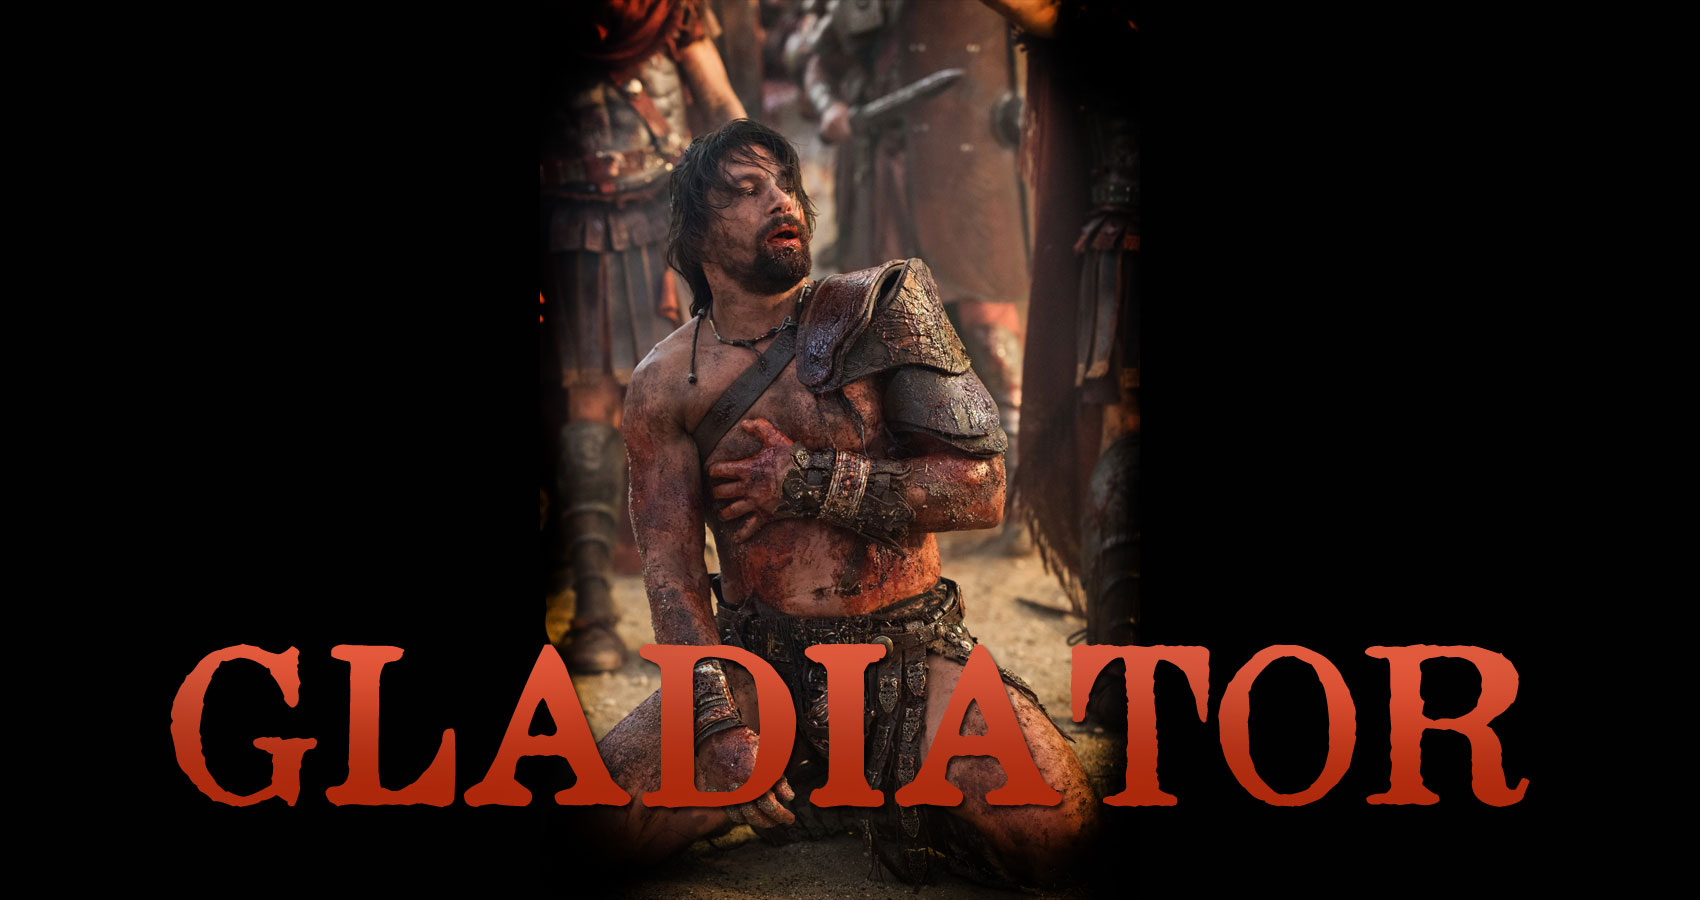 Gladiator by Nobby66 at Spillwords.com